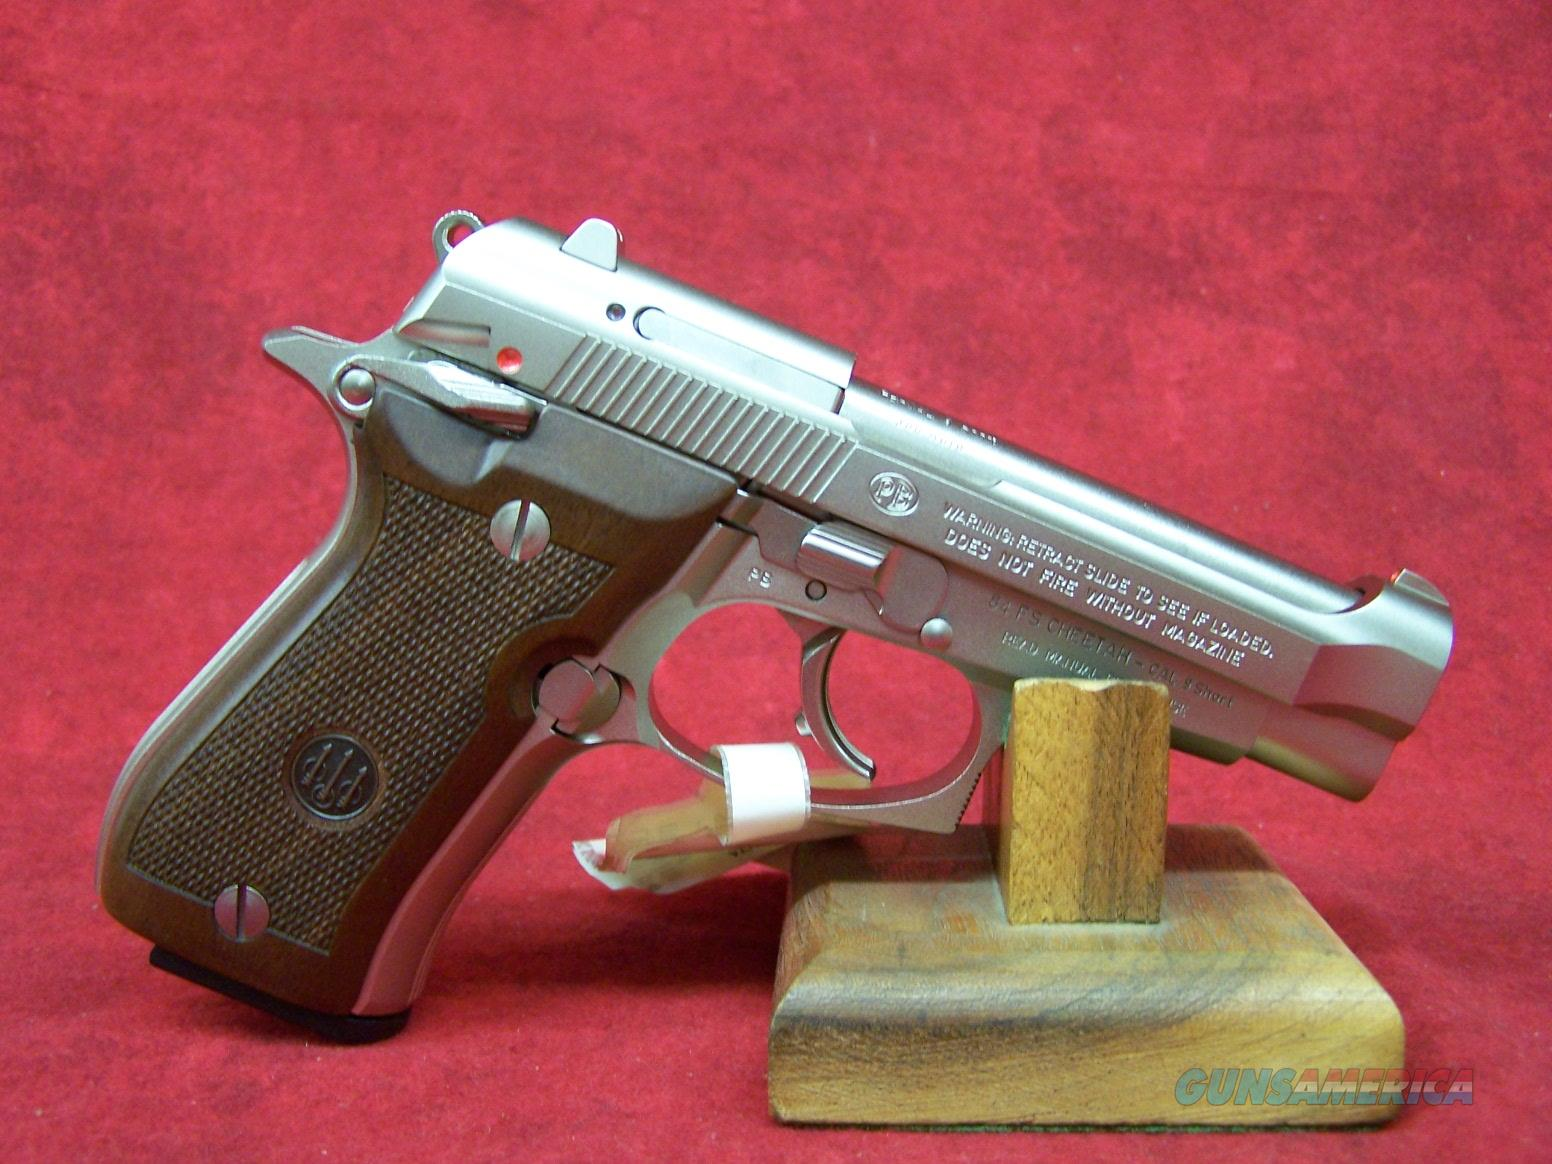 "BERETTA 84FS CHEETAH 380ACP NICKEL WOOD 3.8"" BARREL (J84F212M)  Guns > Pistols > Beretta Pistols > Cheetah Series > Model 84"